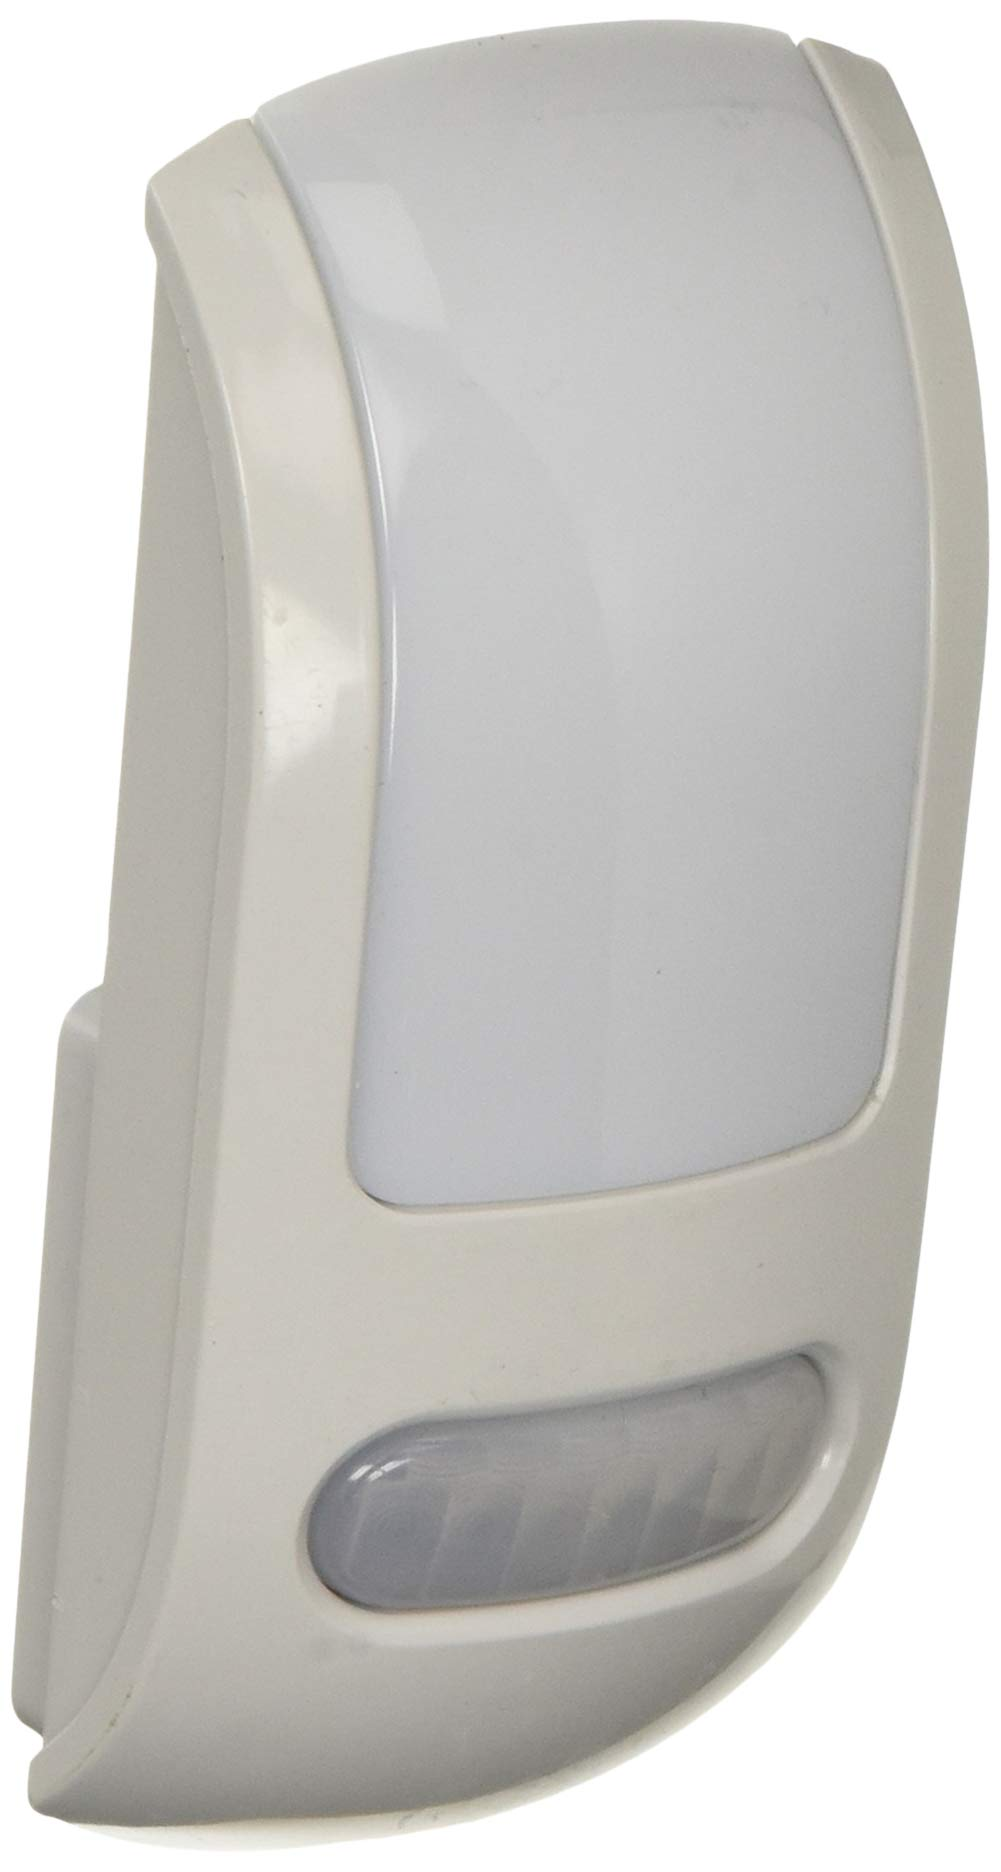 GLOBE ELECTRIC 8950401 Motion Sensor Night Light